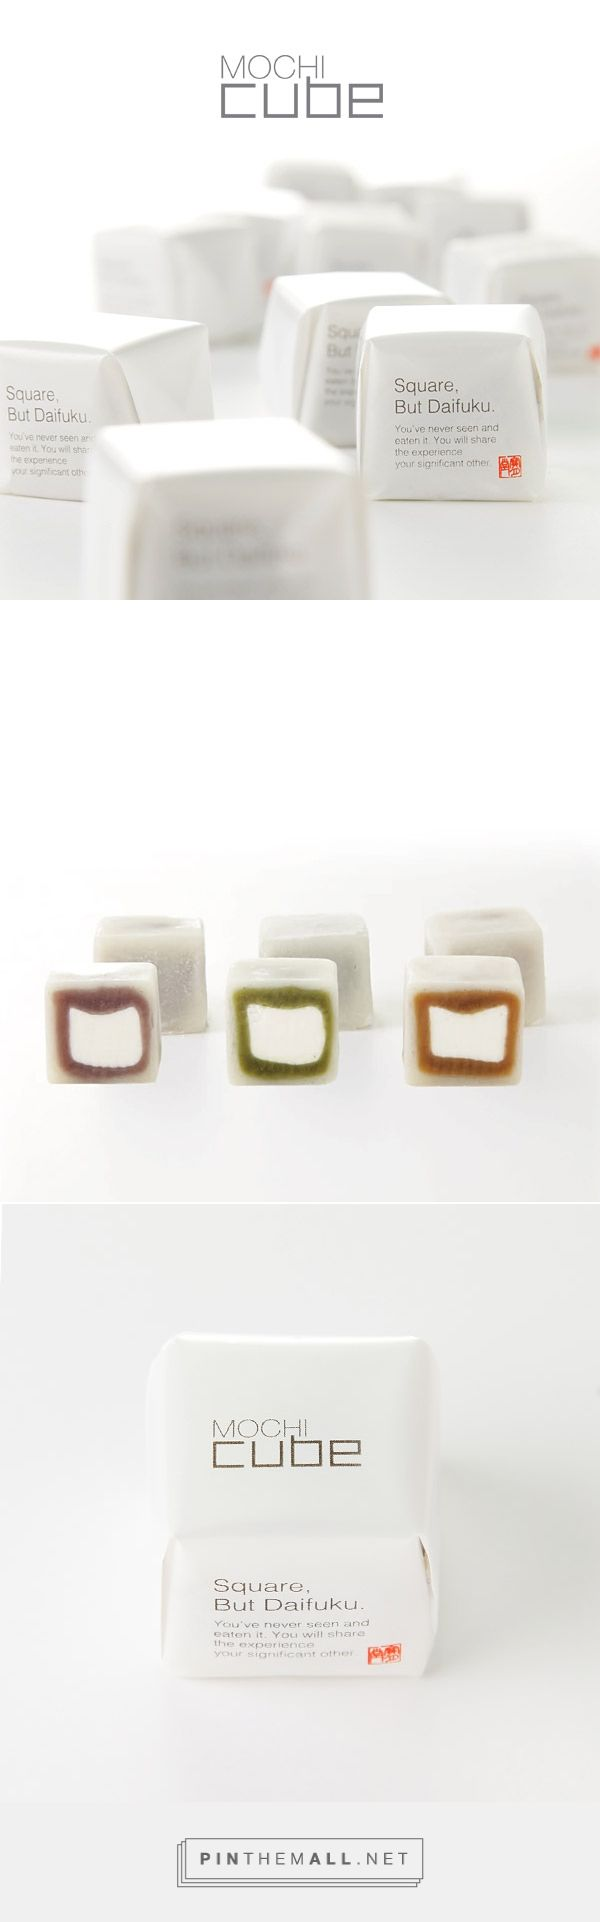 MOCHI cube ® | 鳥取 宝月堂 curated by Packaging Diva PD. Yummy something : )